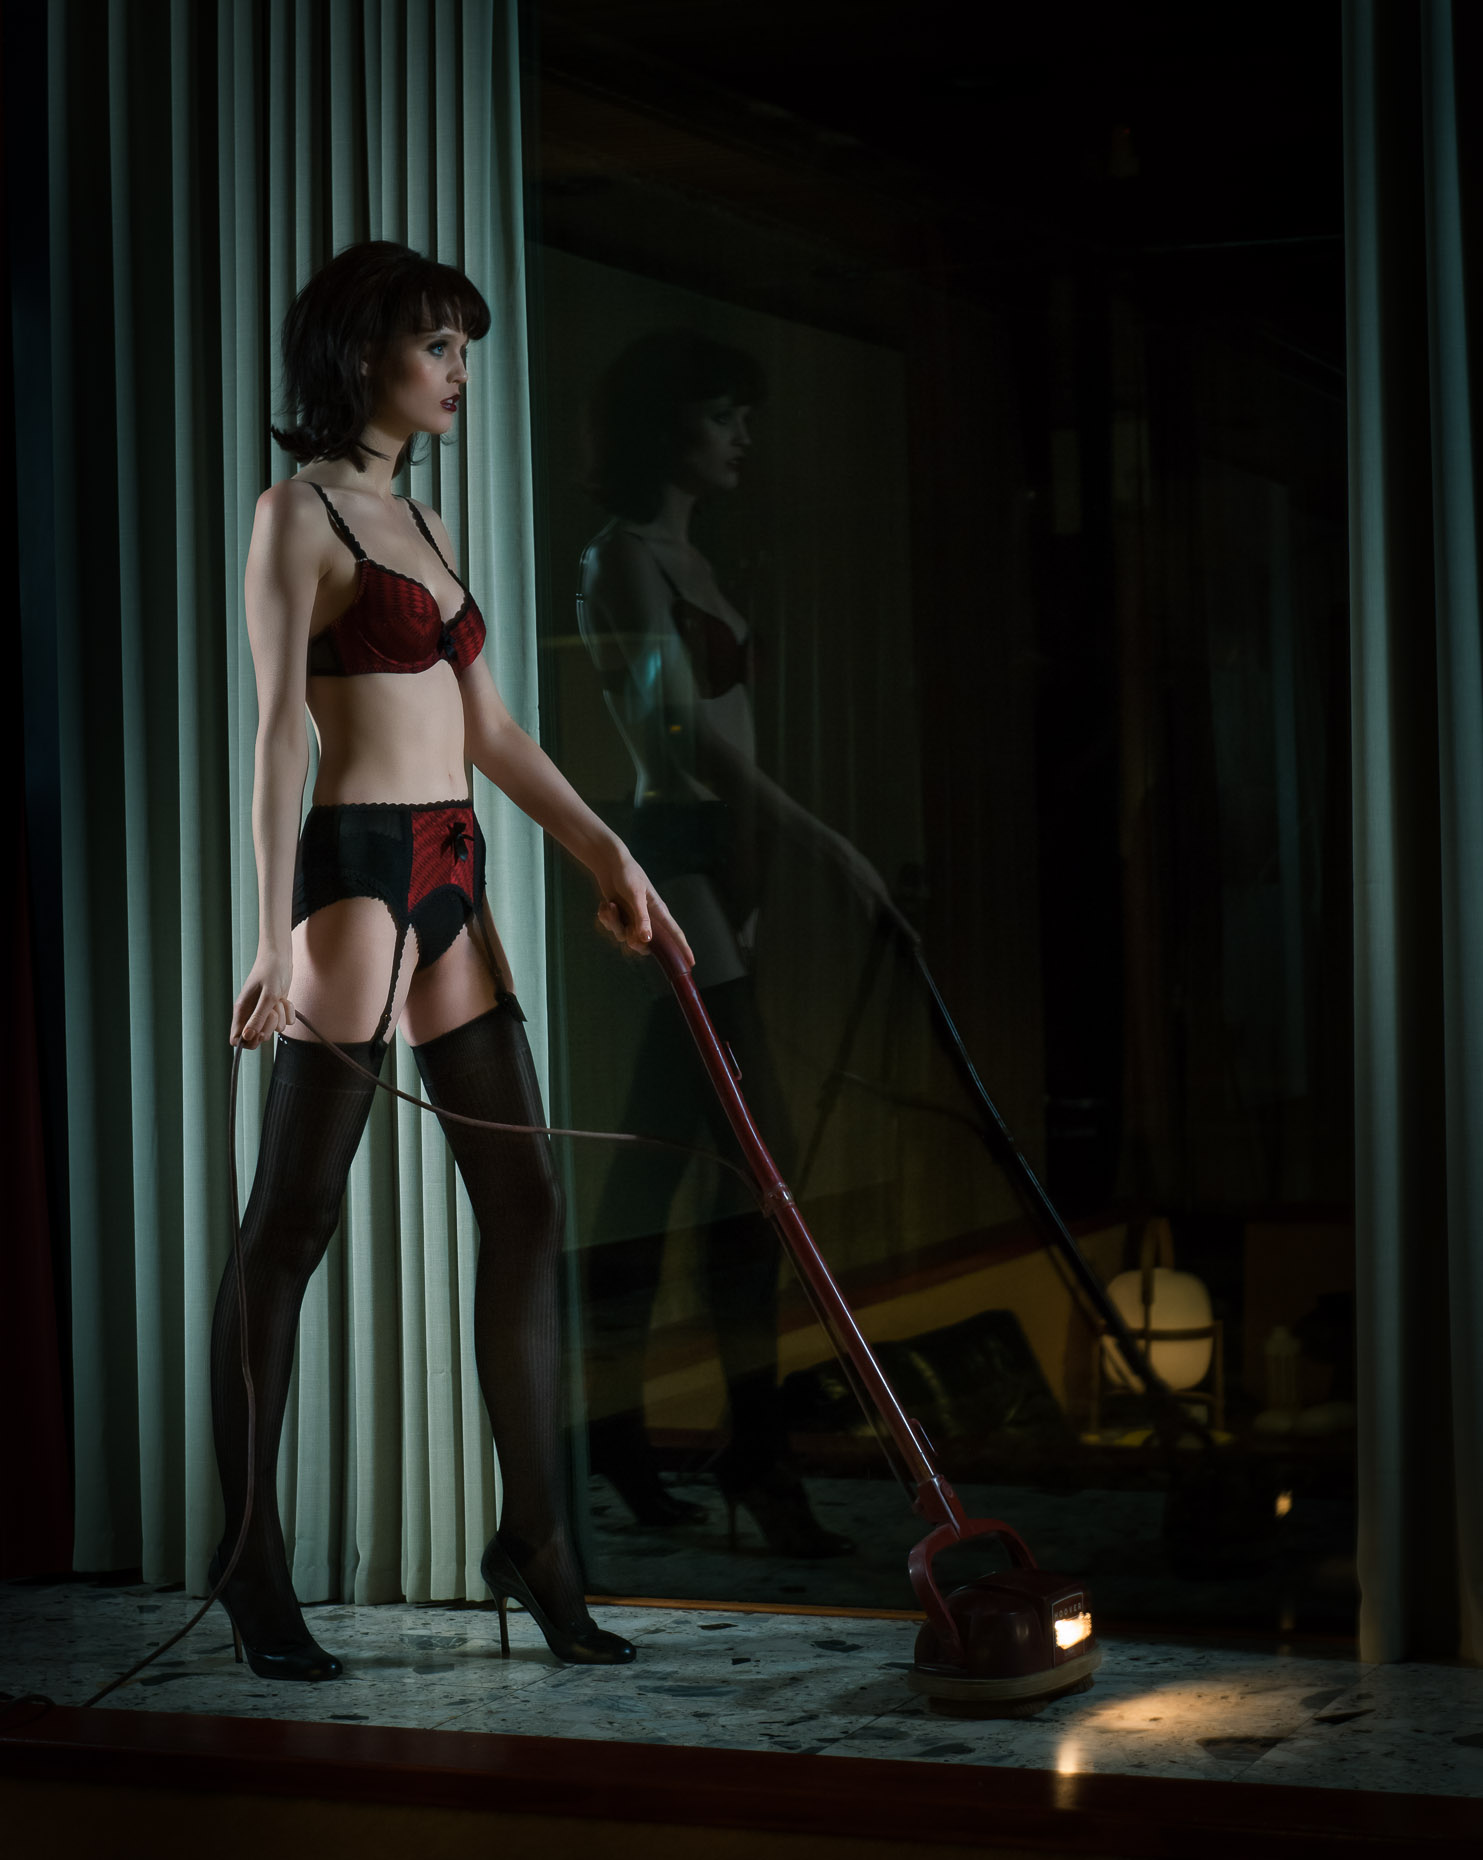 flo-dron-hoovering-in-lingerie